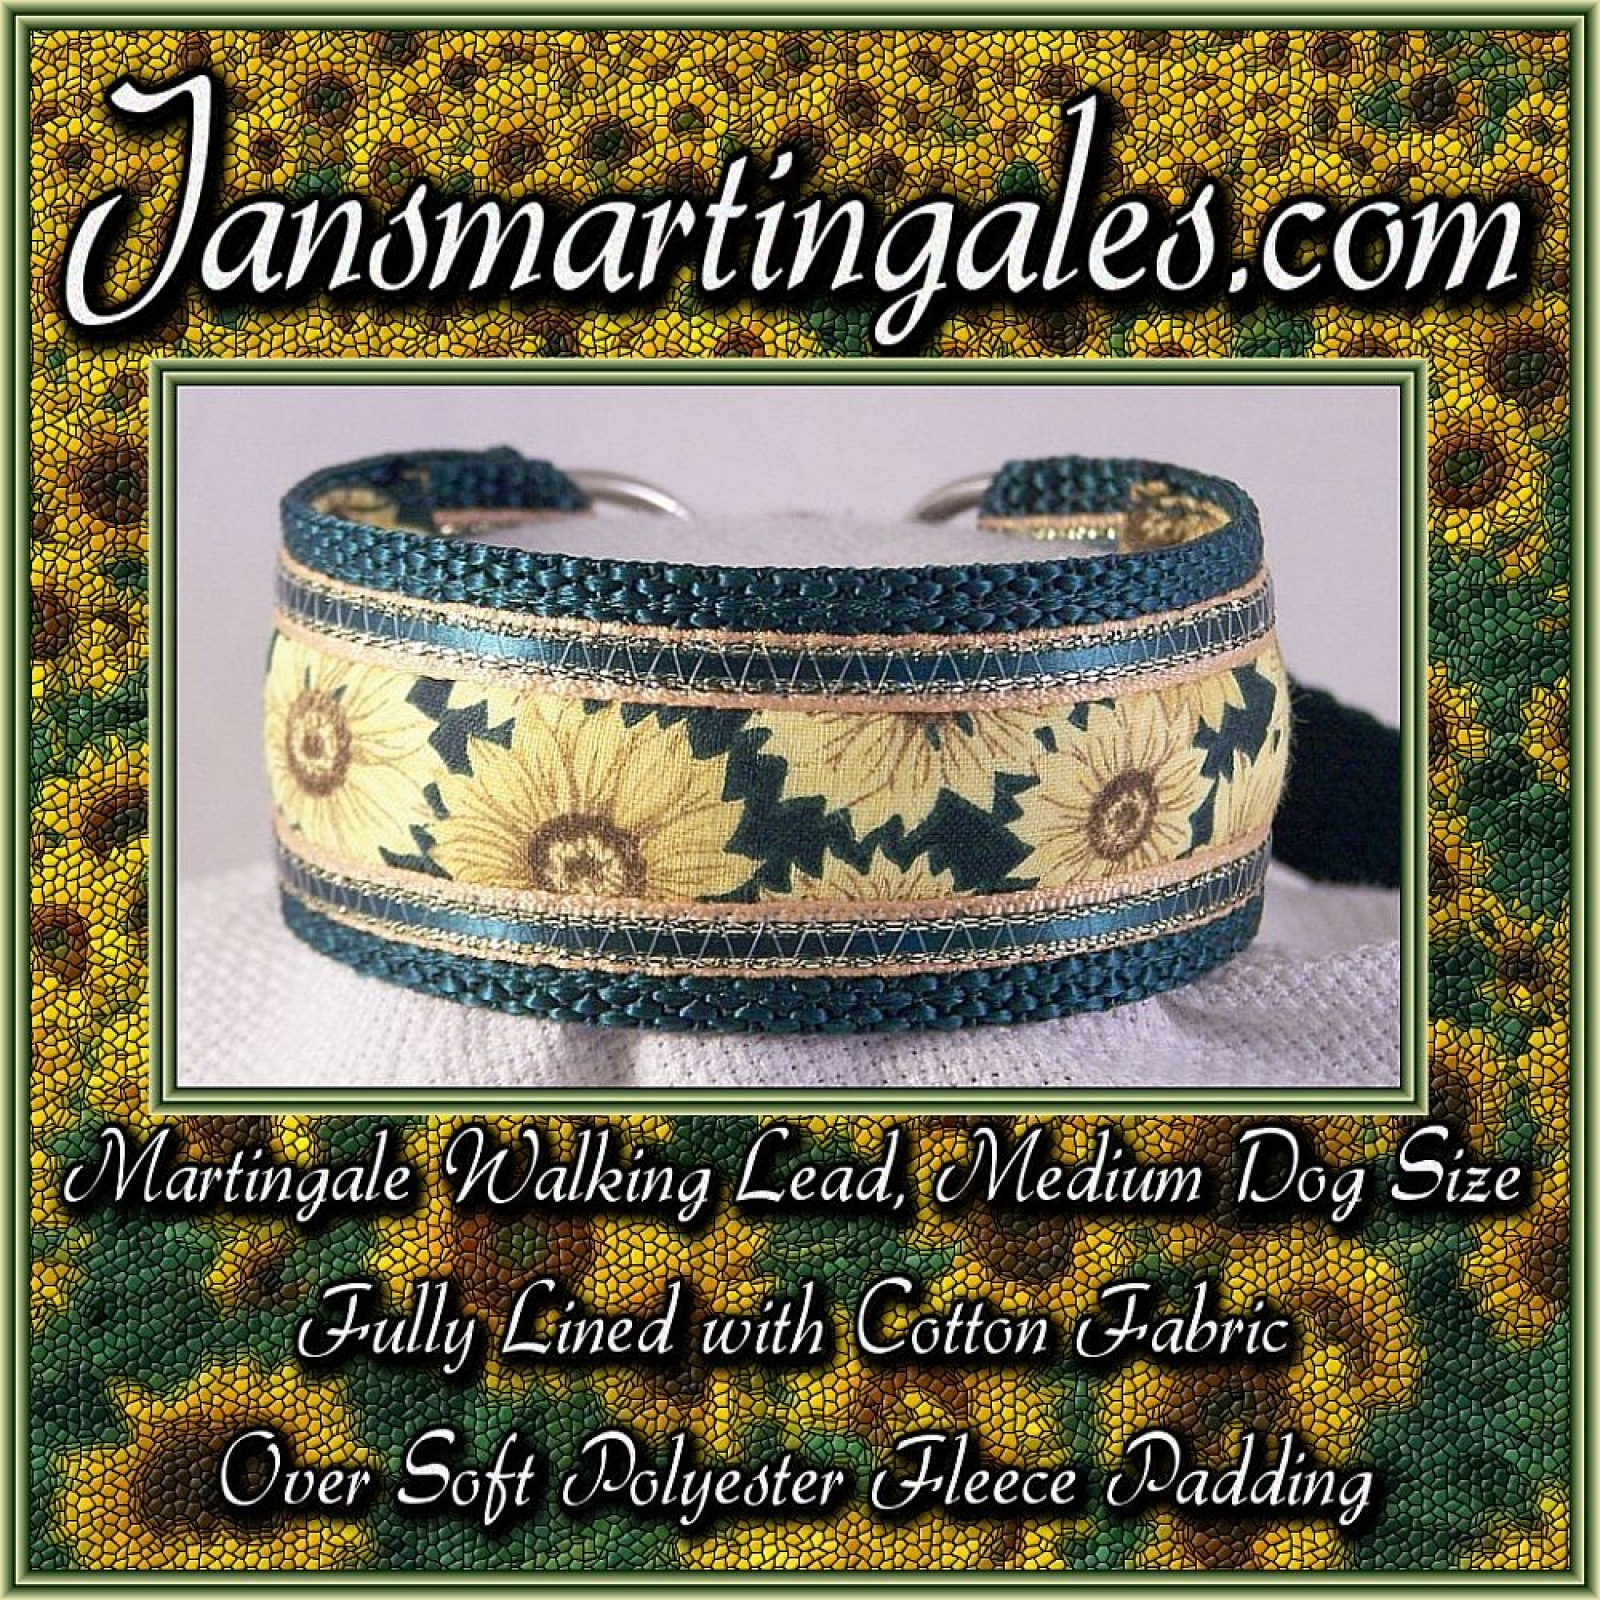 Jansmartingales Dark Green Martingale Walking Lead Dog Collar And